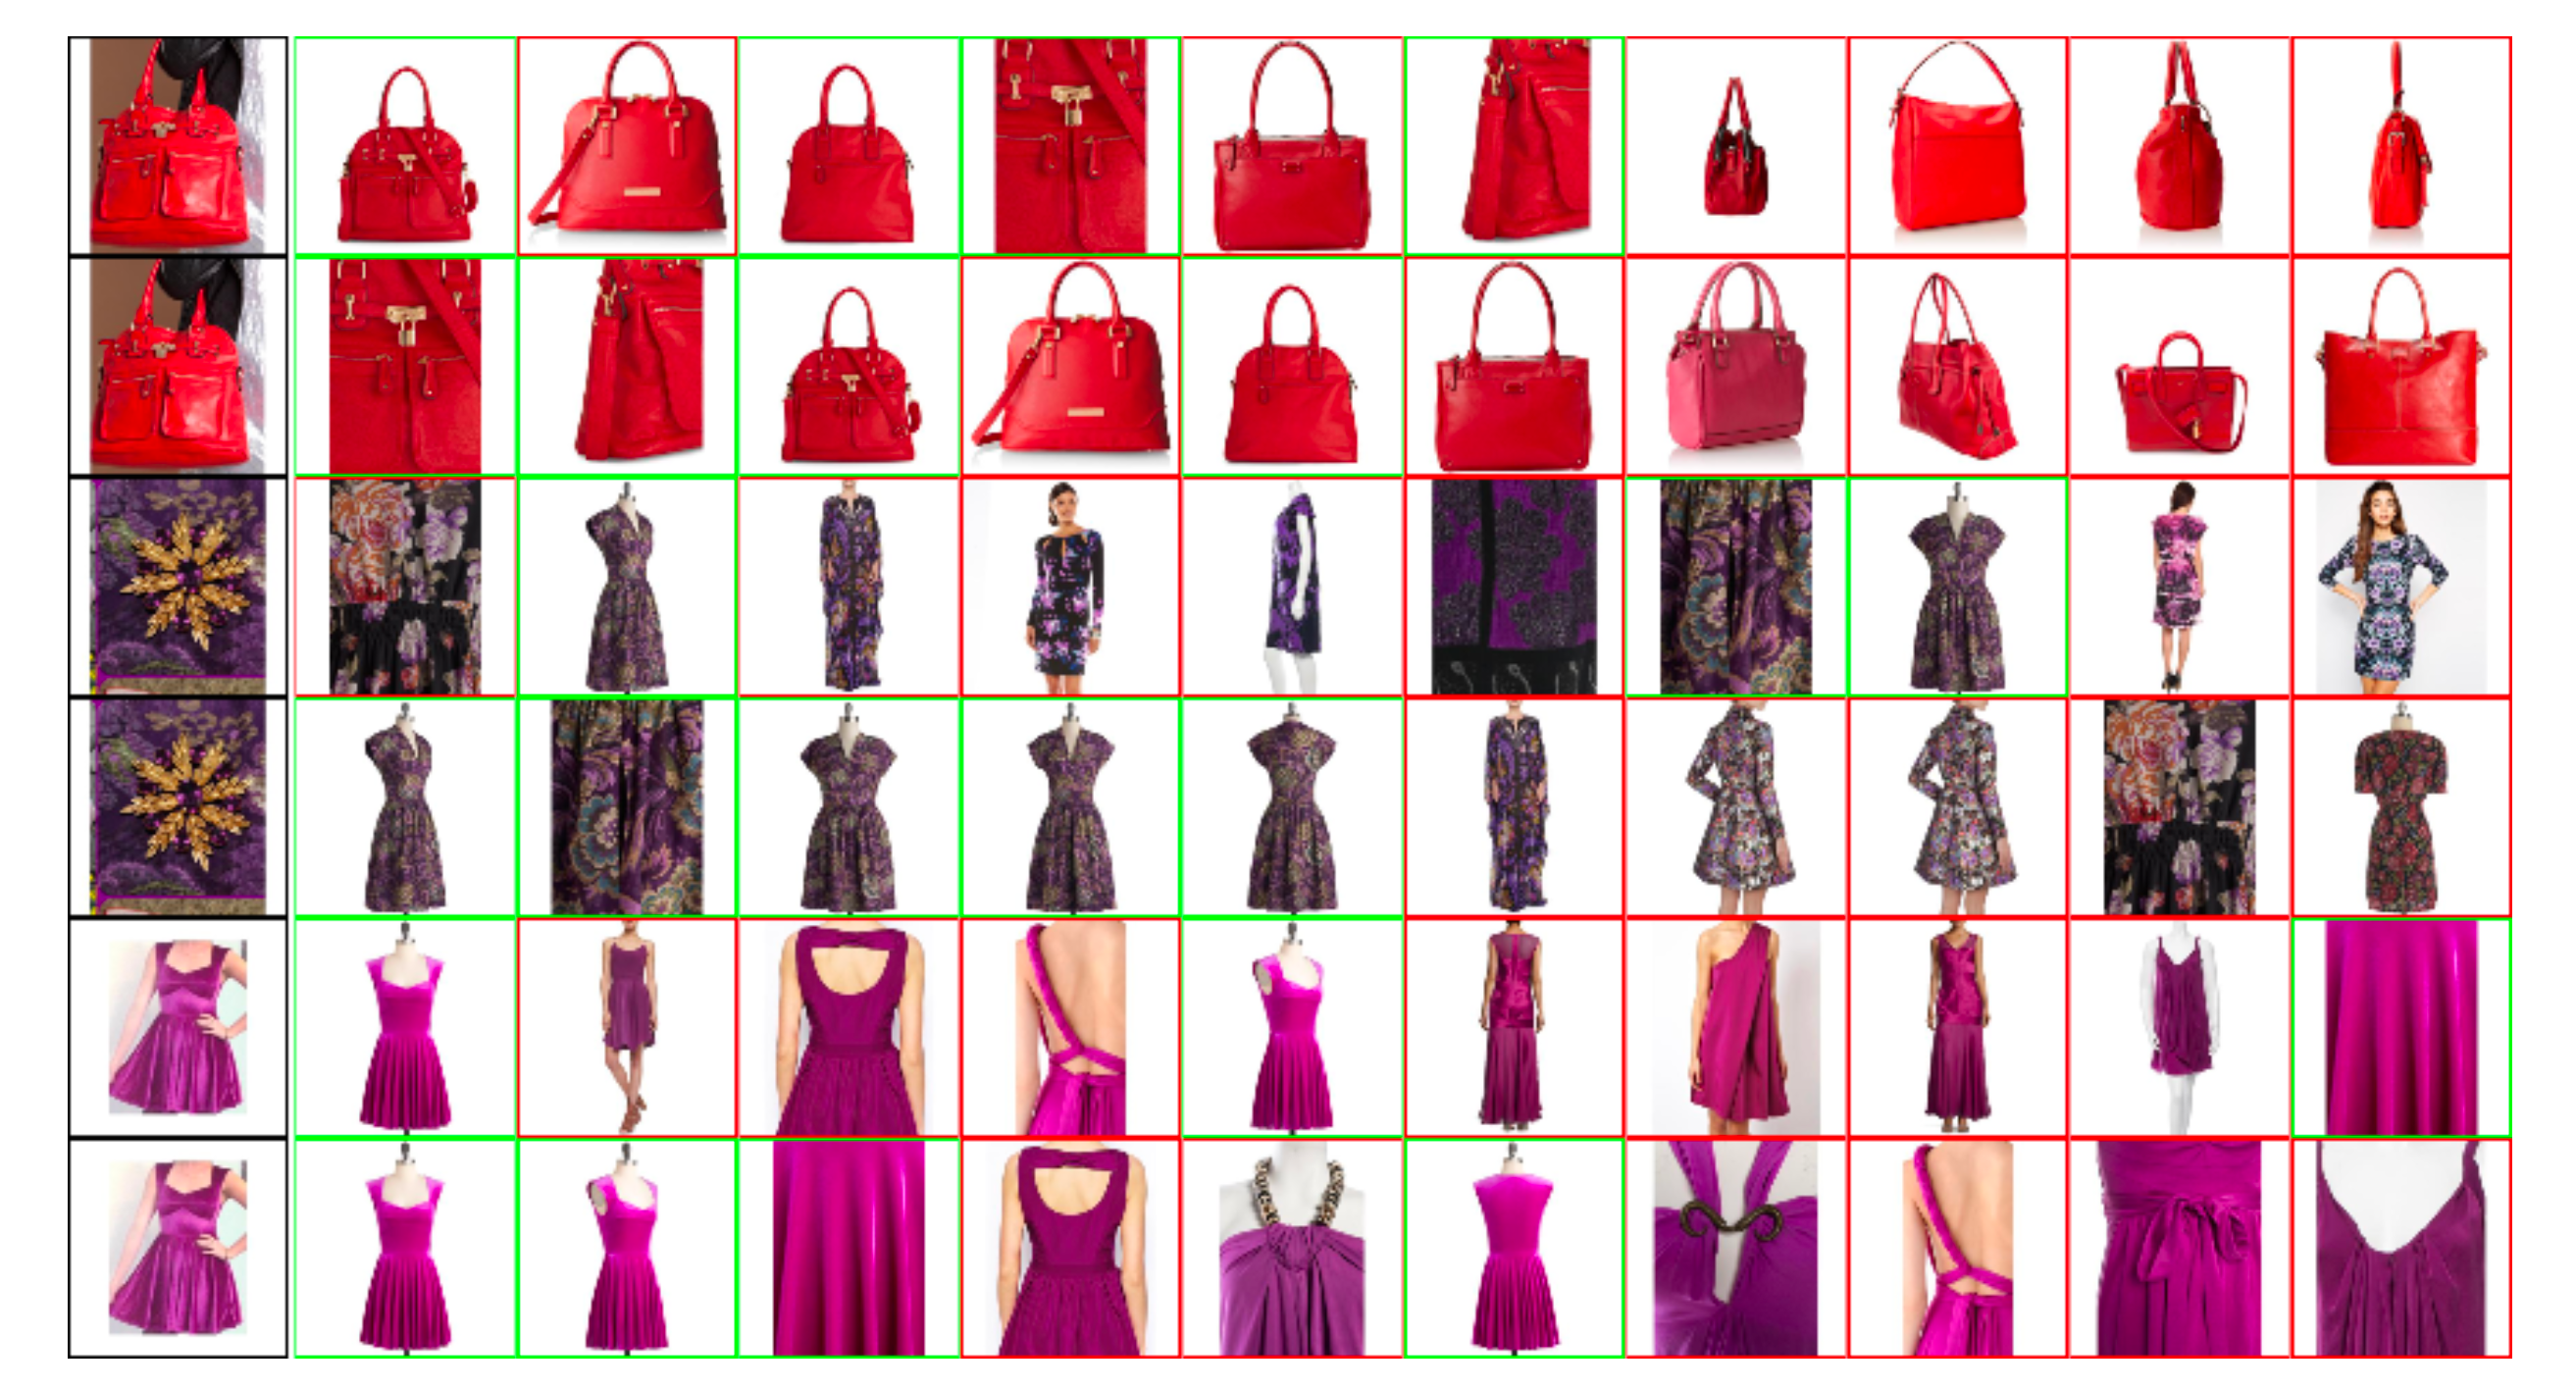 Examples of retrieval on Street2Shop dataset produced by our best model on 320x320 images.